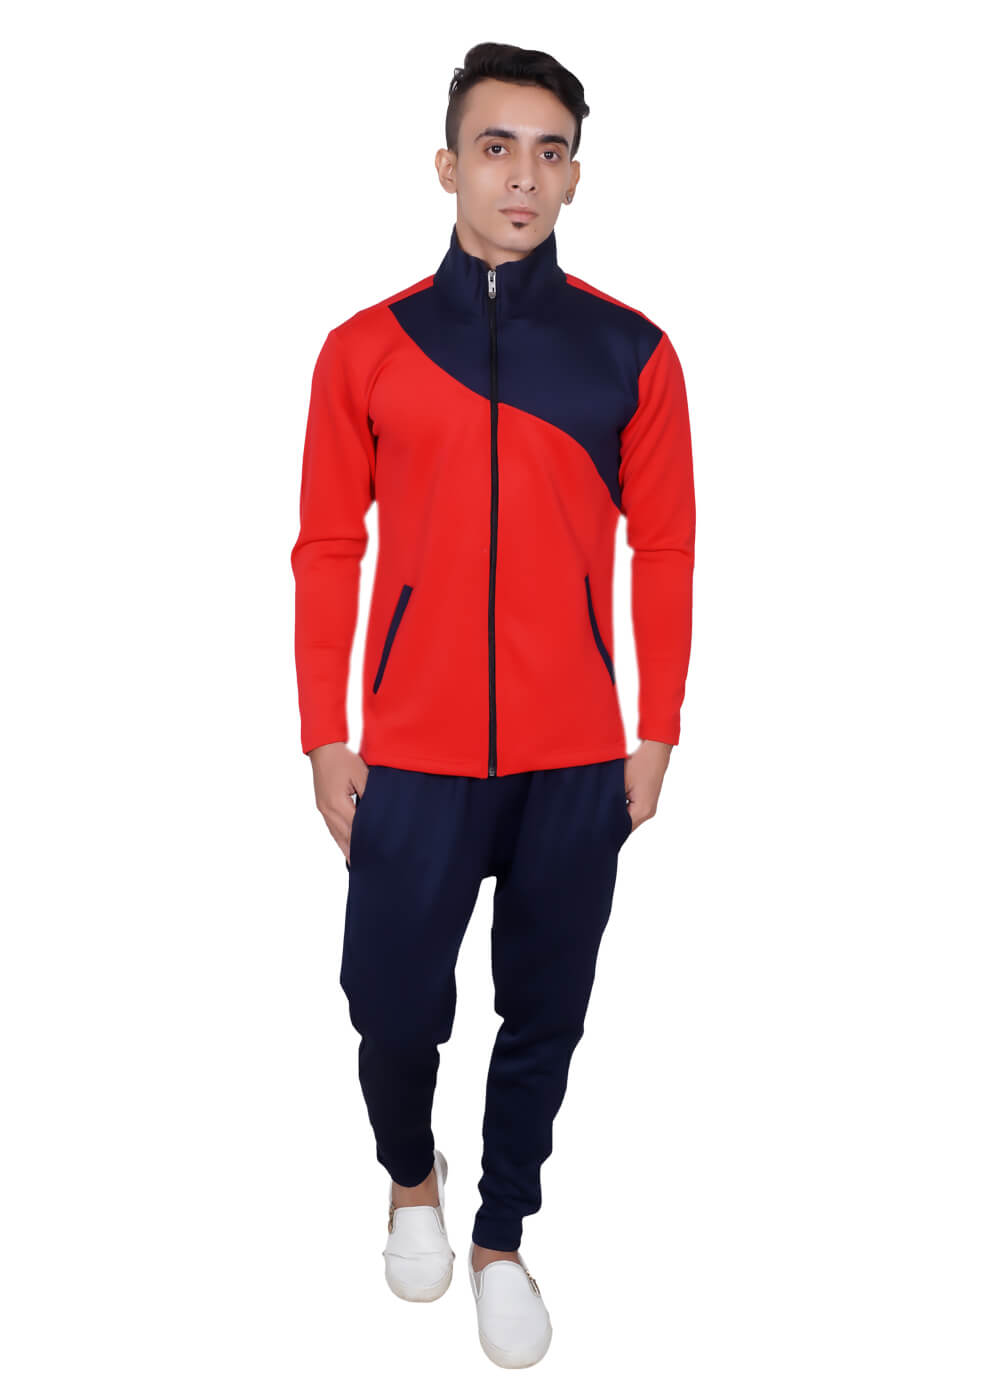 Cheap Tracksuits Manufacturers in Thailand